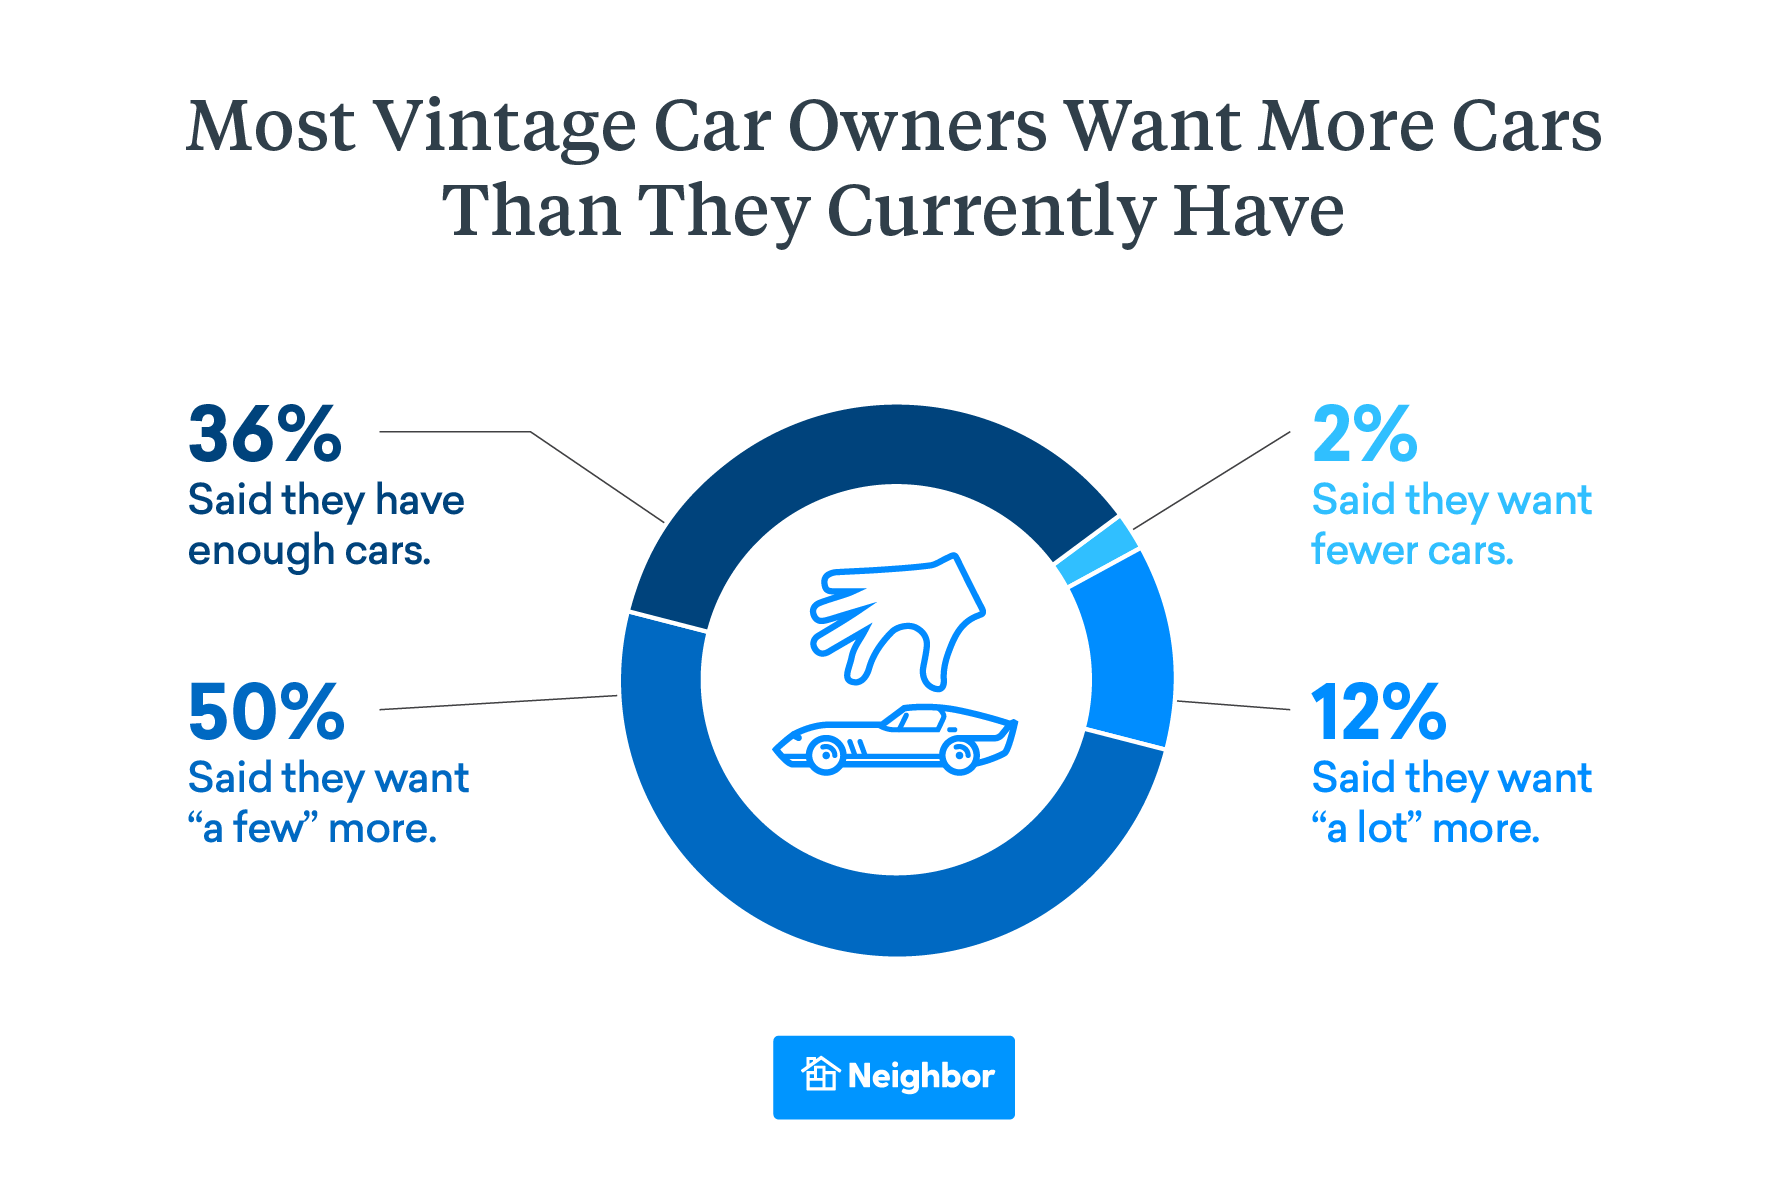 Most Vintage Car Owners Want More